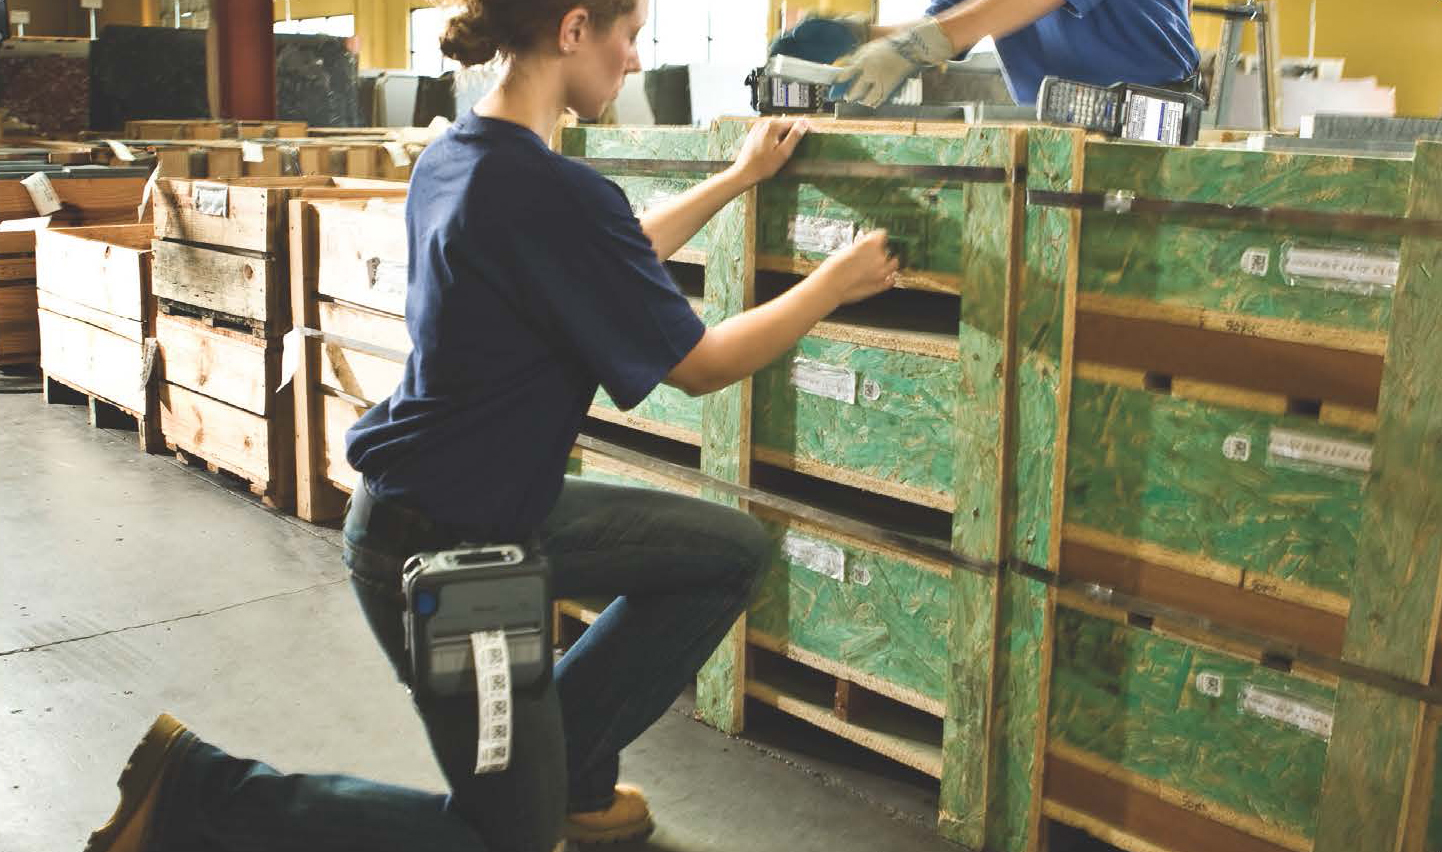 Mobile Labeling in the Warehouse or Manufacturig Facility